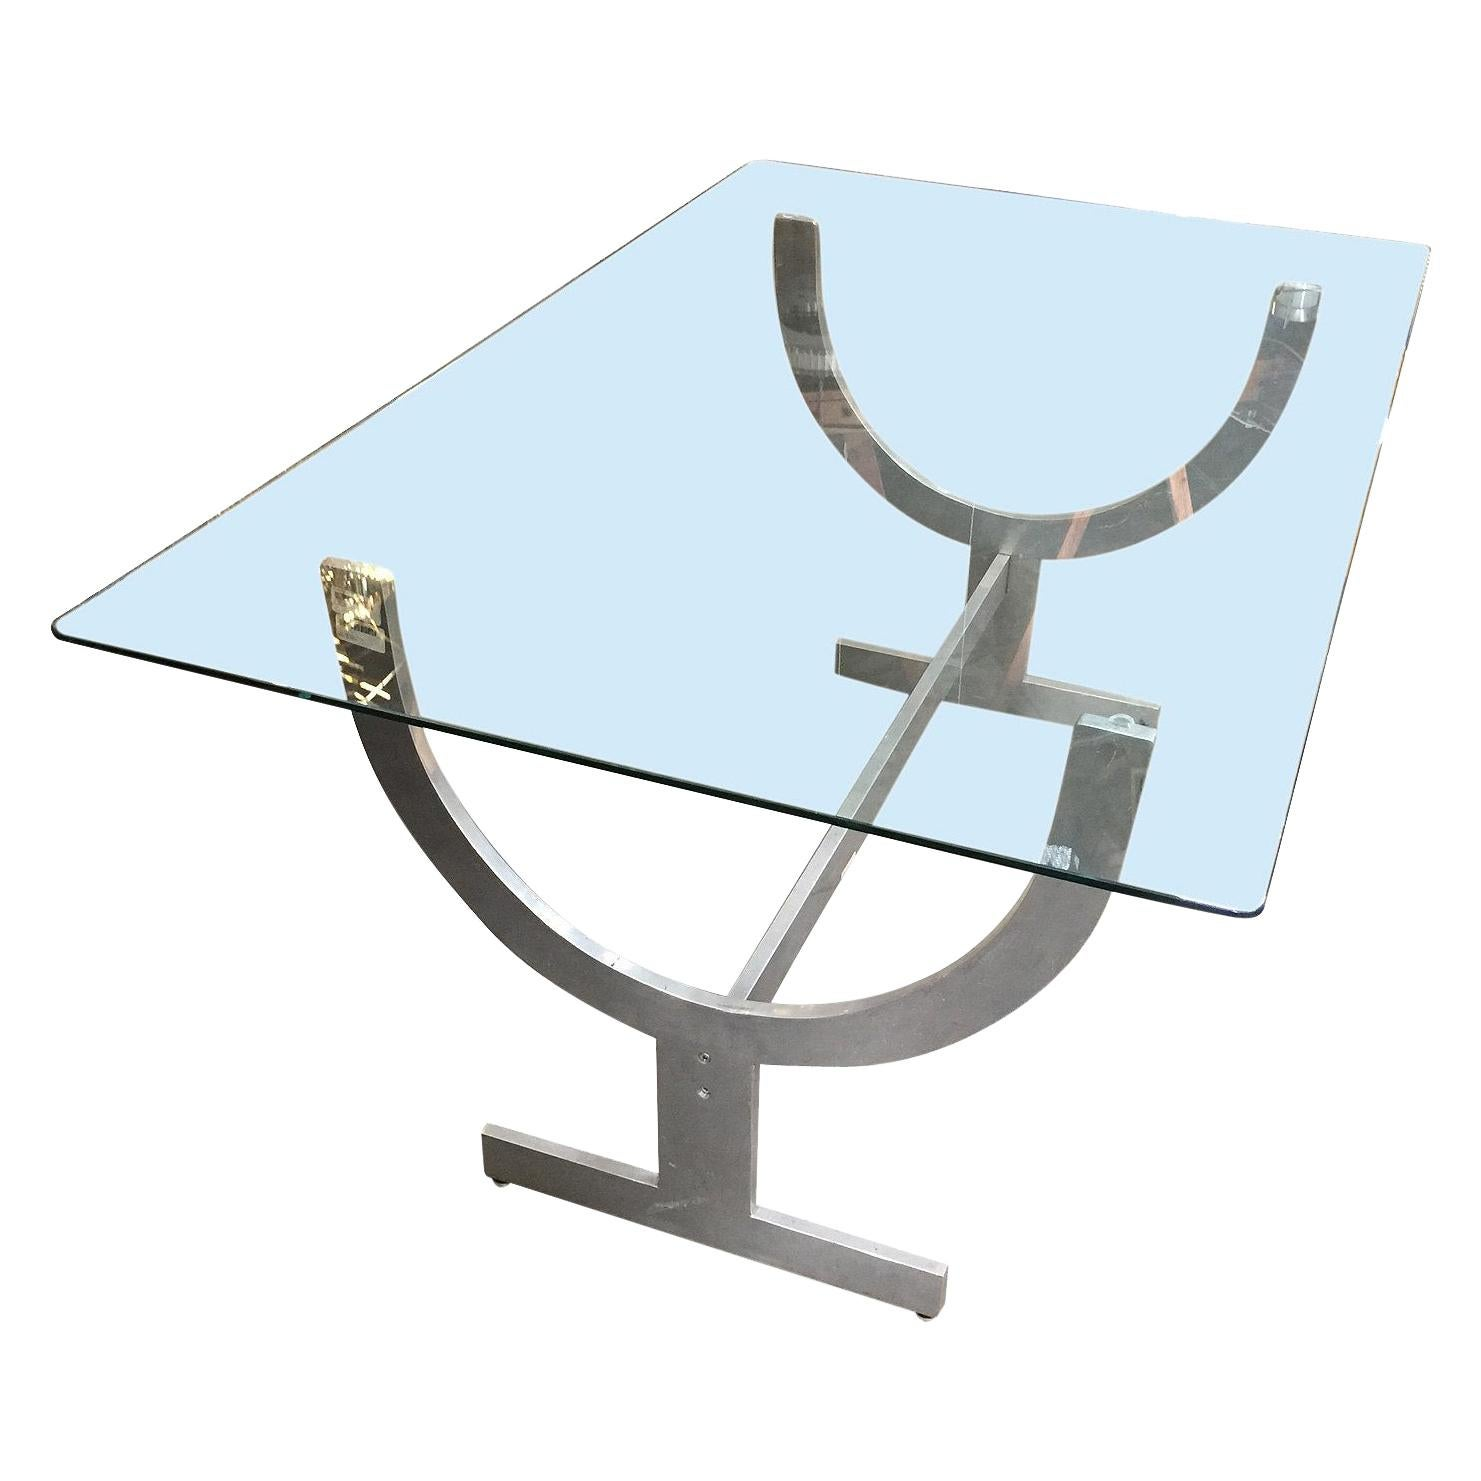 Machined Aluminum Dining Table with Glass Top